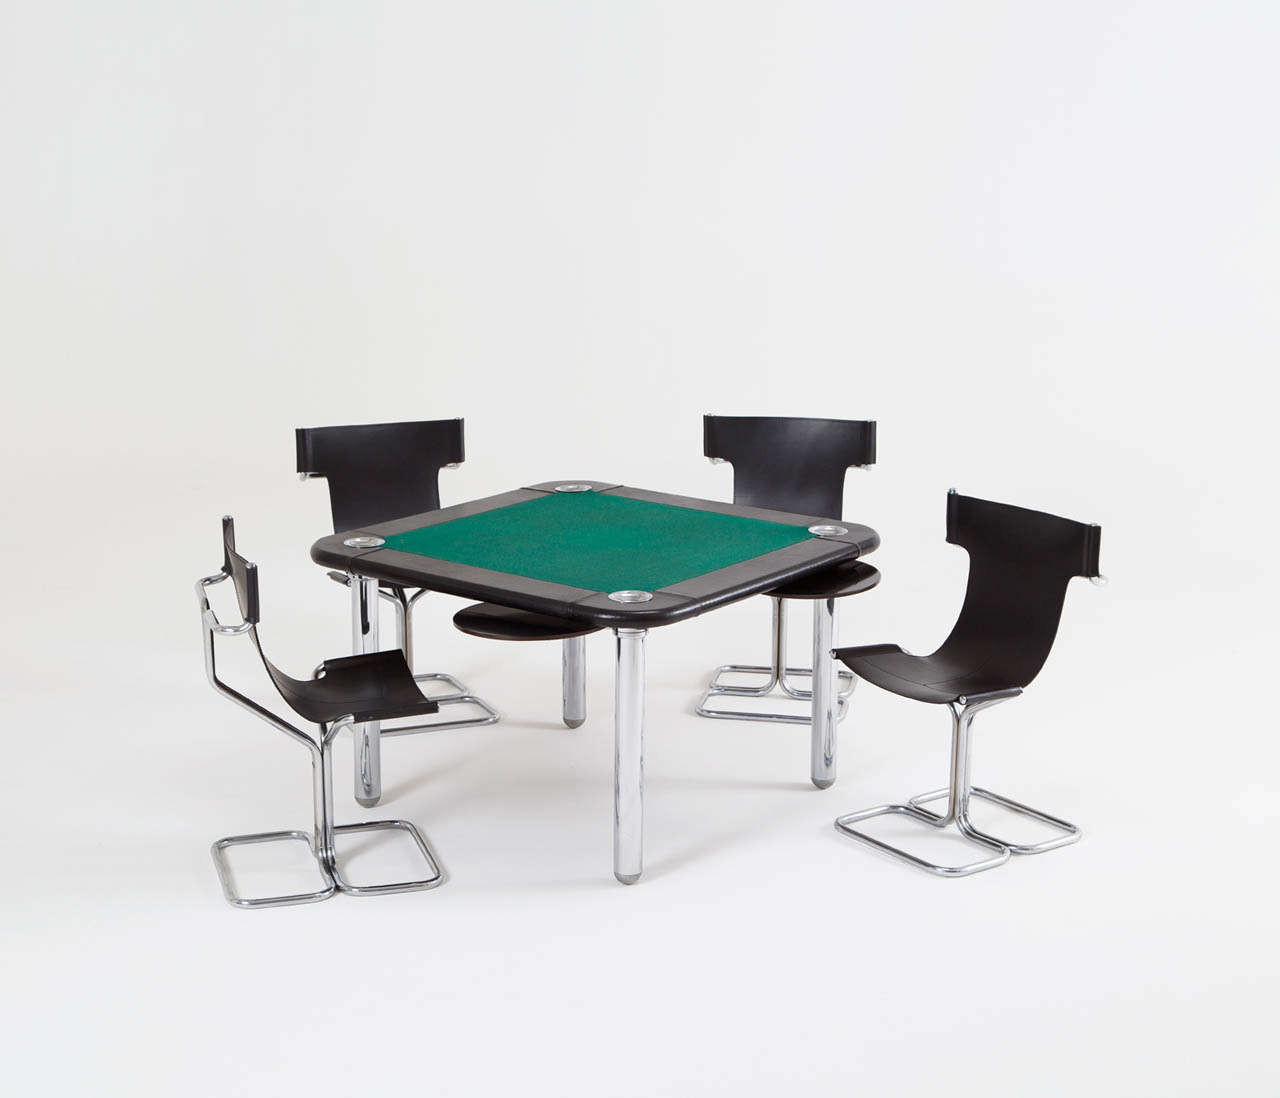 Table And Chair For Sale: Chrome And Leather Game/Card Table And Chairs For Sale At